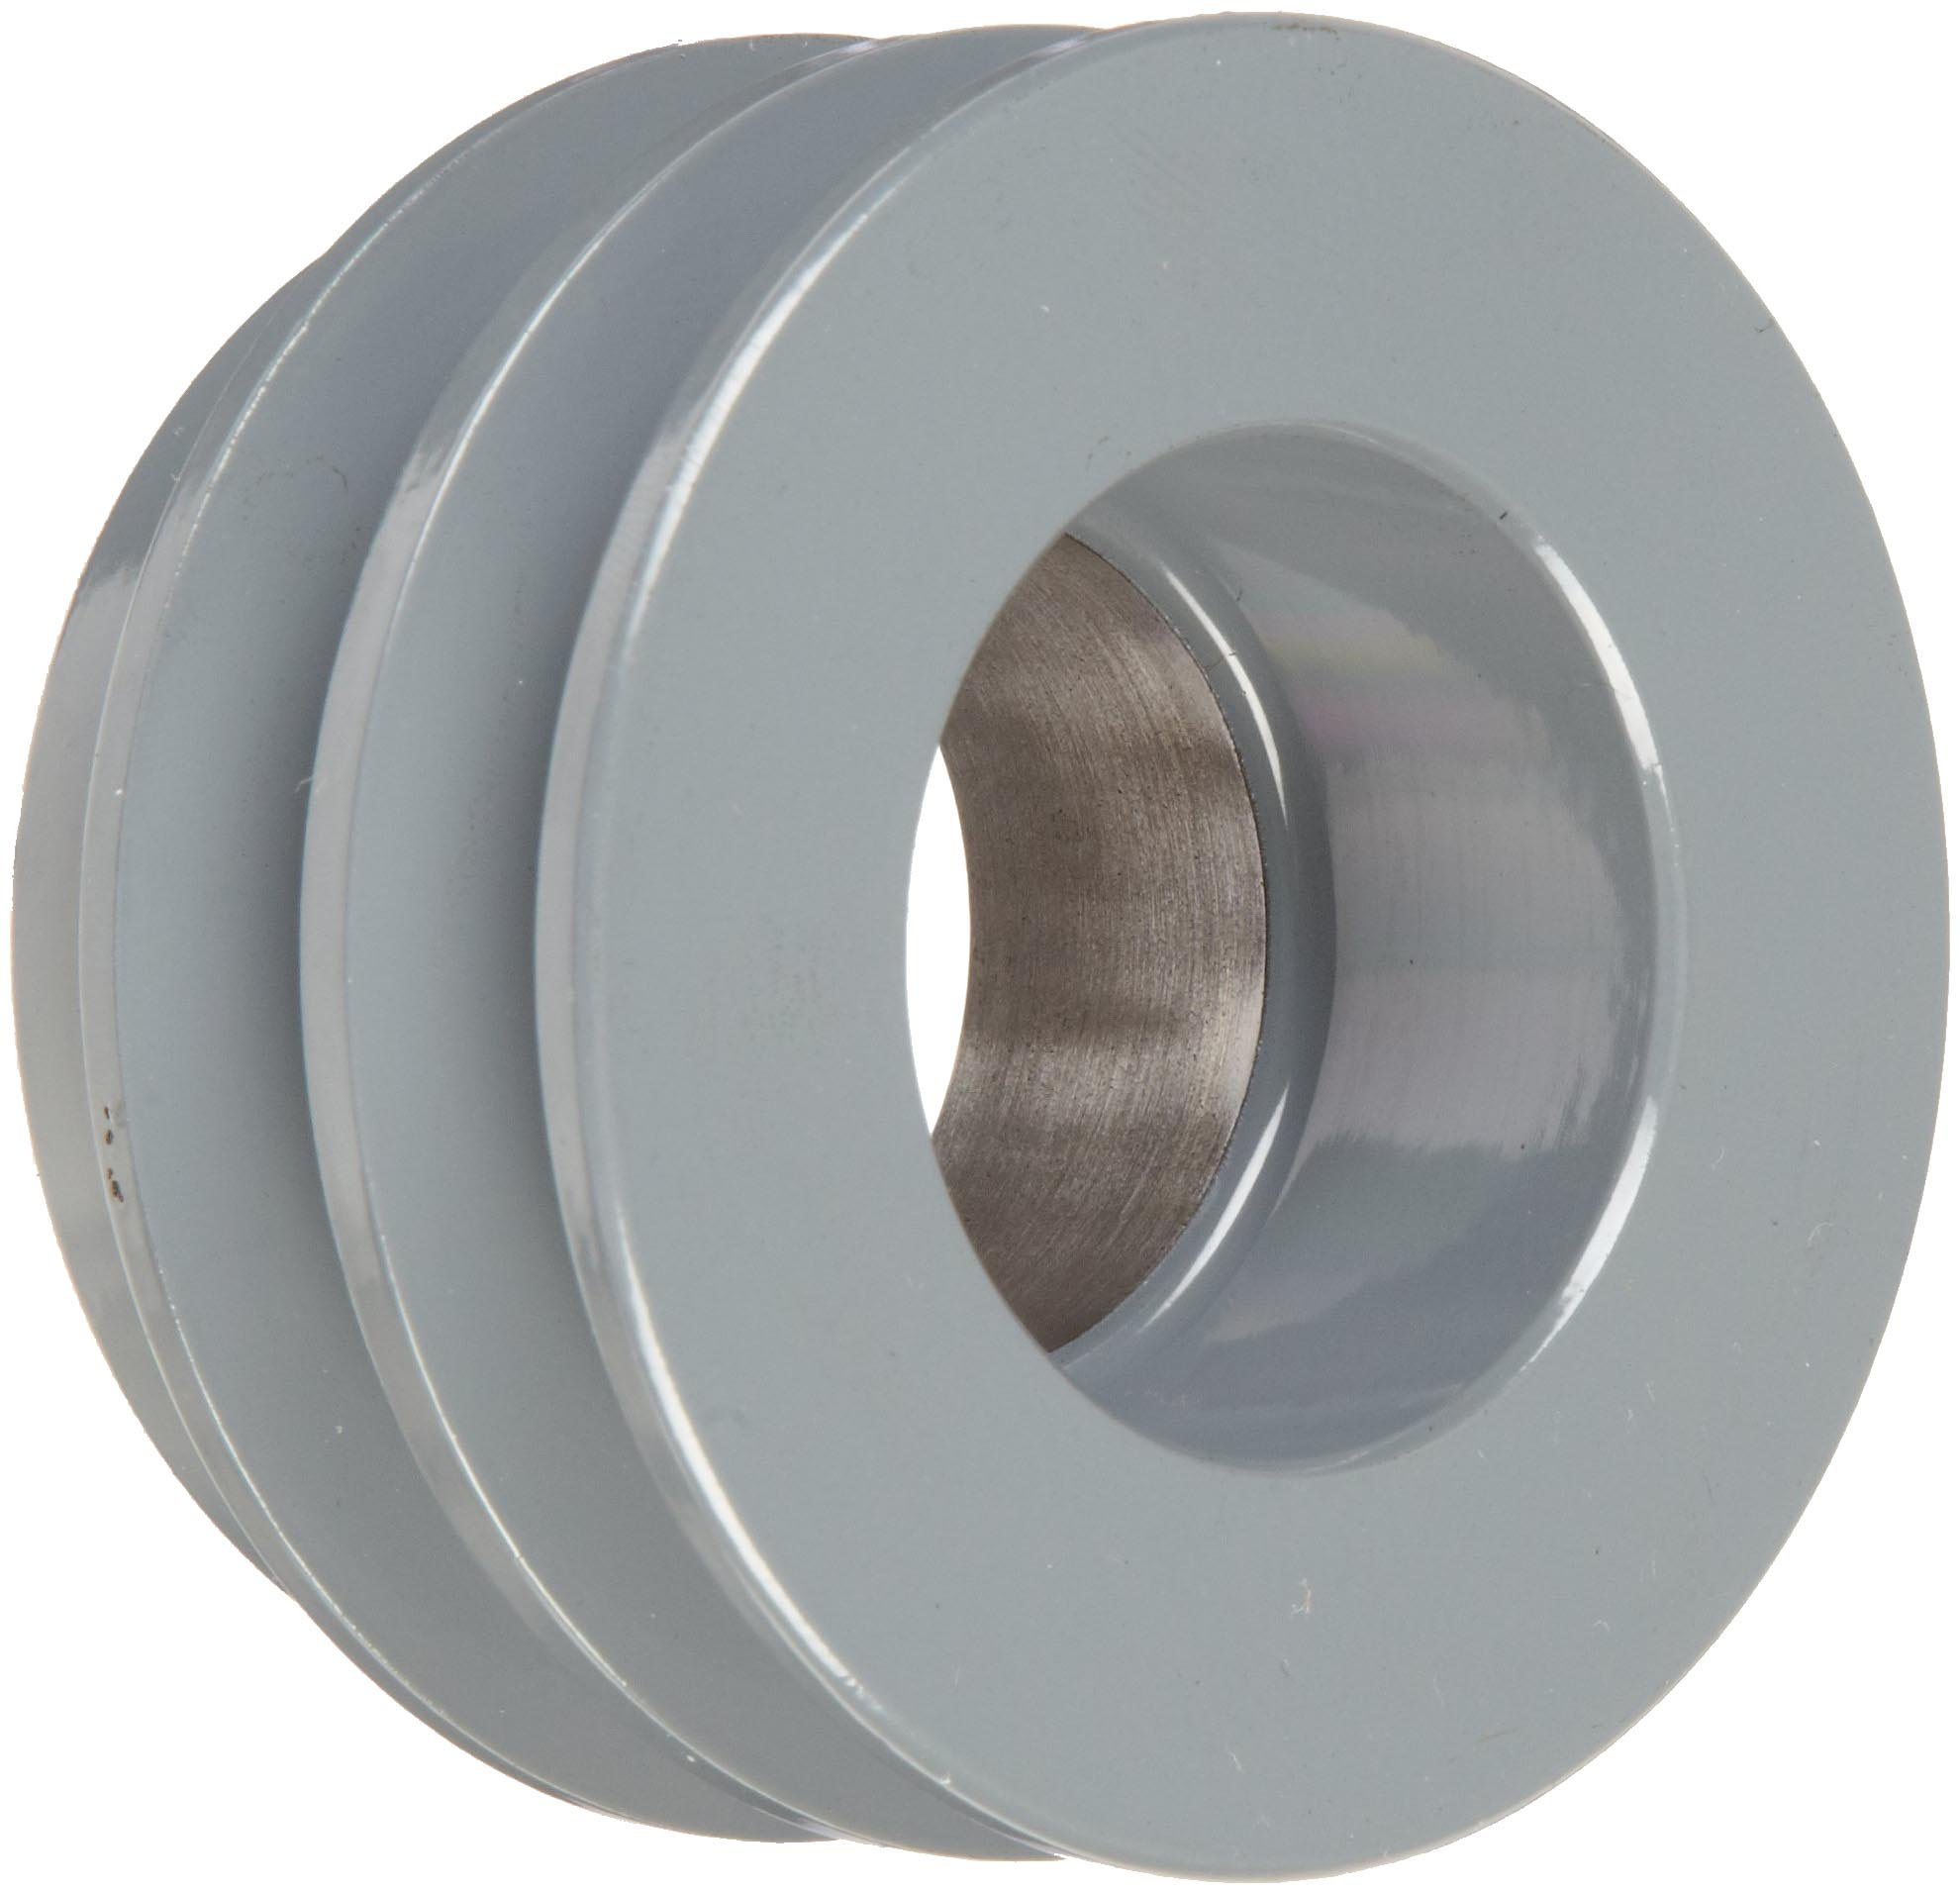 TB Woods 2AK32 FHP QT Bushed V-Belt Sheave, A Belt Section, 2 Grooves, QT Bushing required, Cast Iron, 3.25'' OD, 7700 max rpm